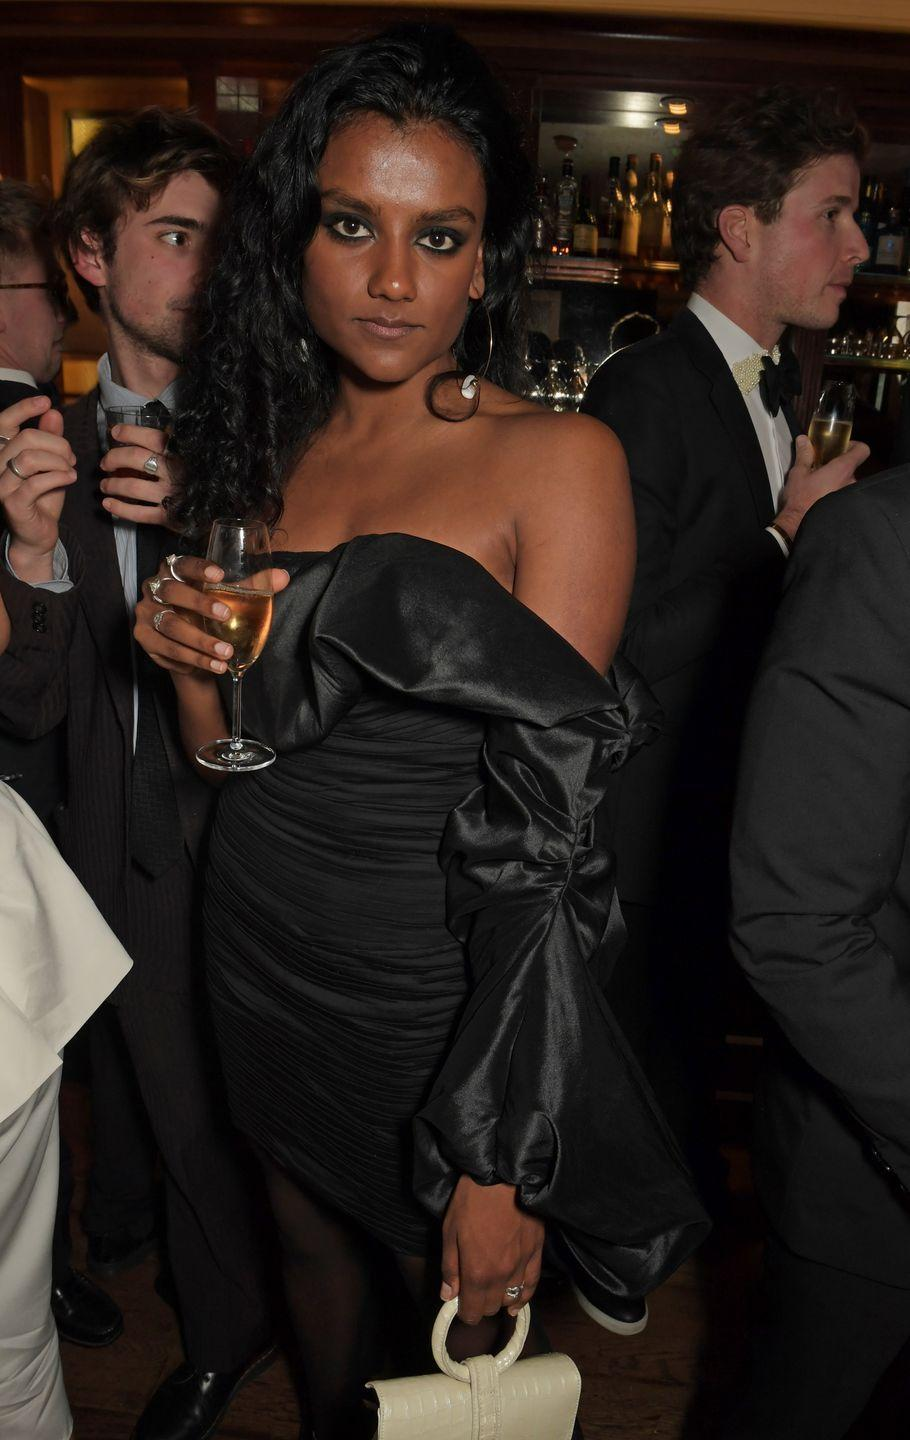 <p>The glamour! She styled out this incredible 80s-inspired off-the-shoulder LBD at a pre-BAFTA party in London last year.</p>